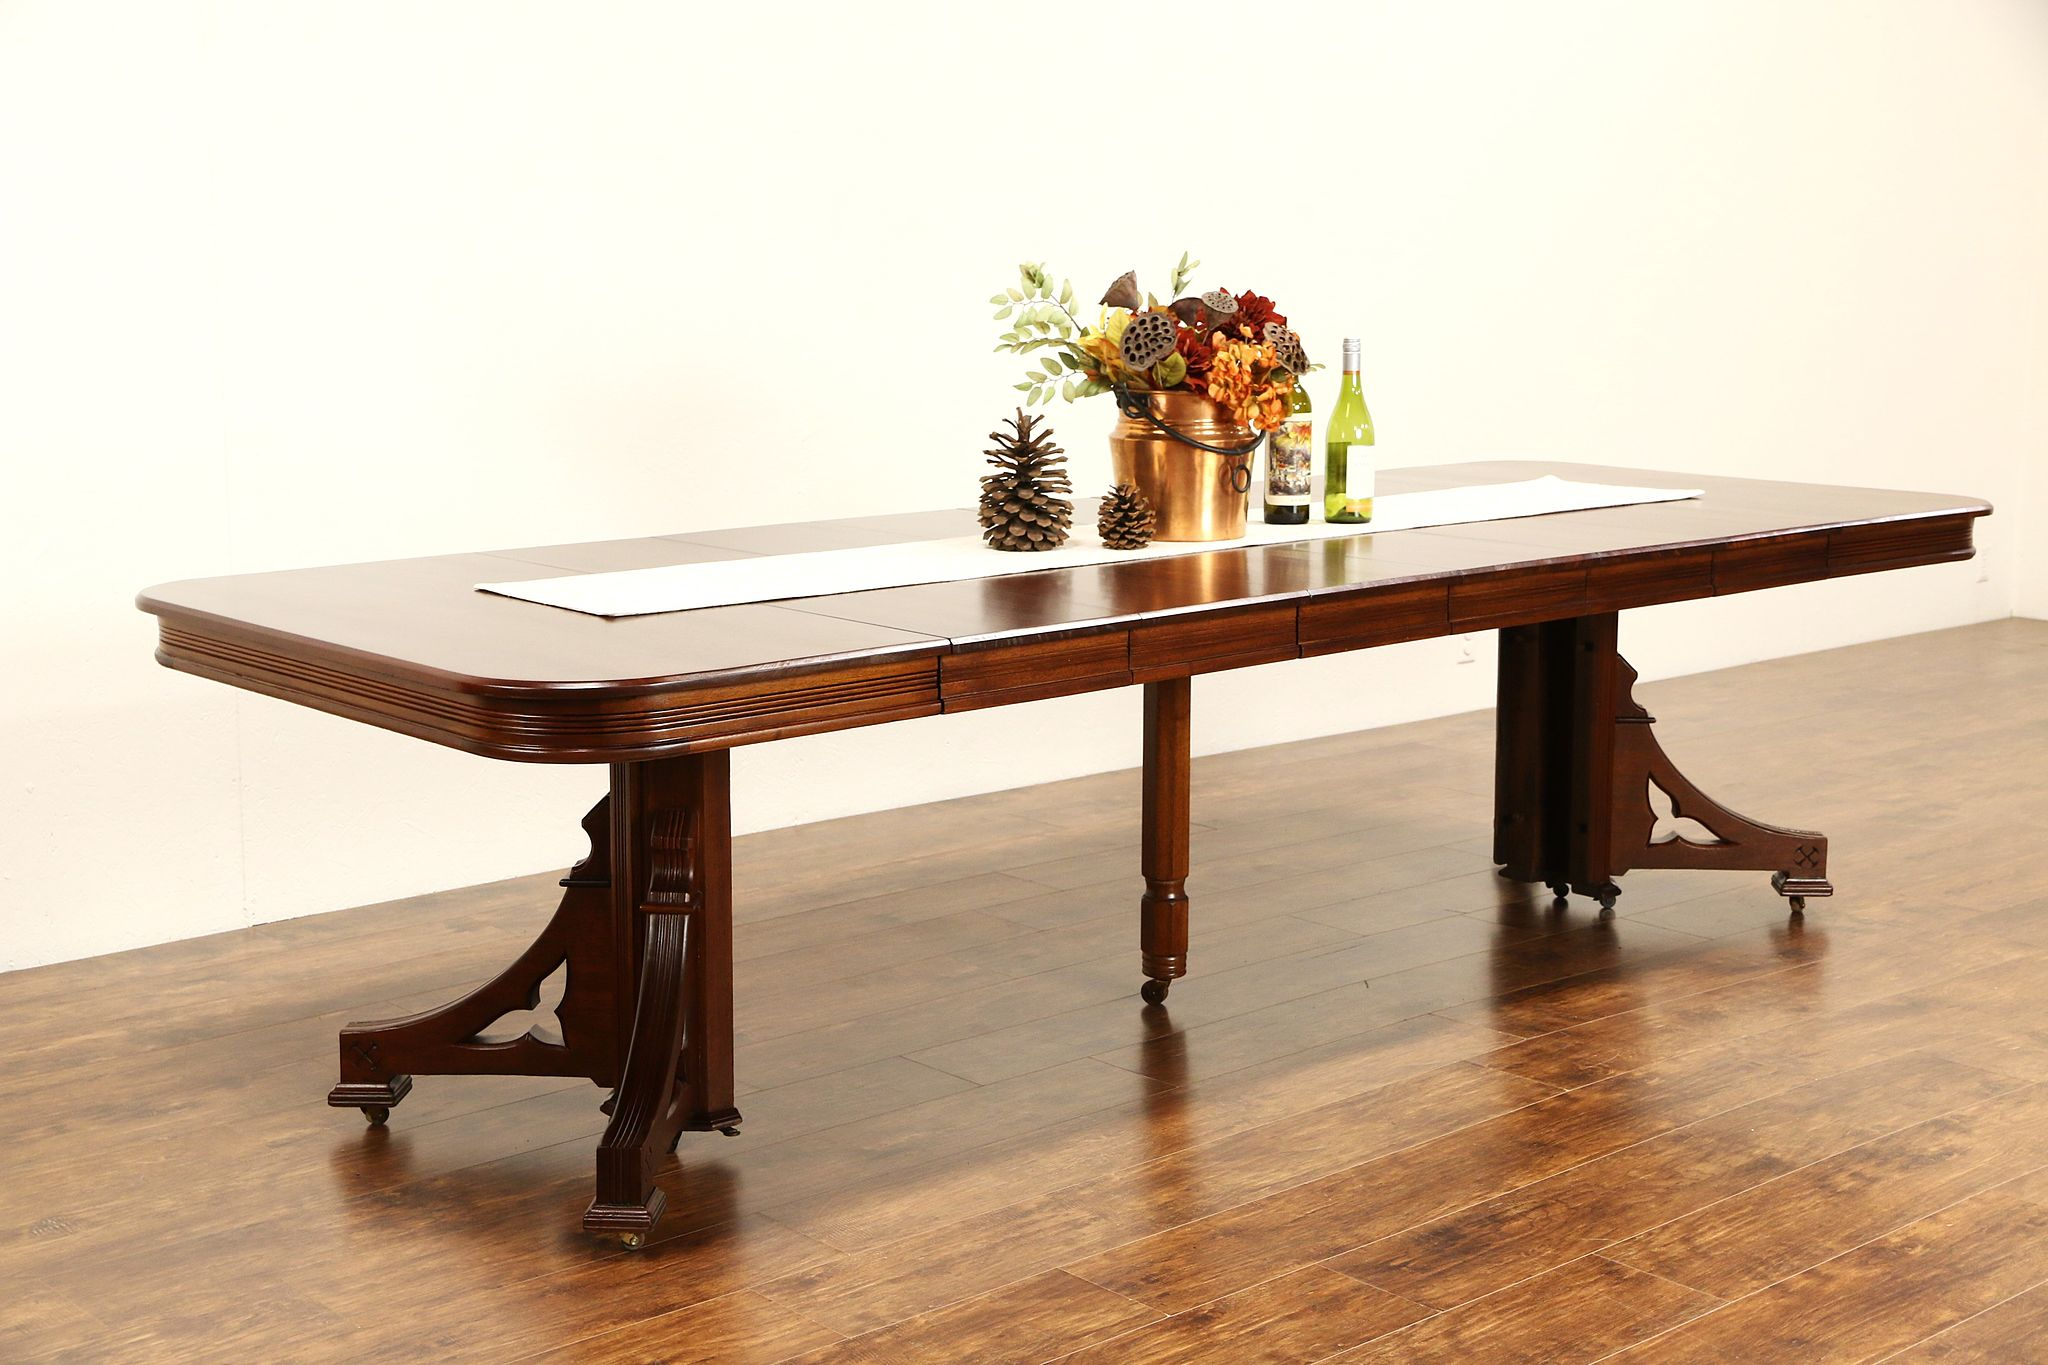 Victorian Eastlake 1885 Antique Mahogany Dining Table 6 Leaves Extends 9 10